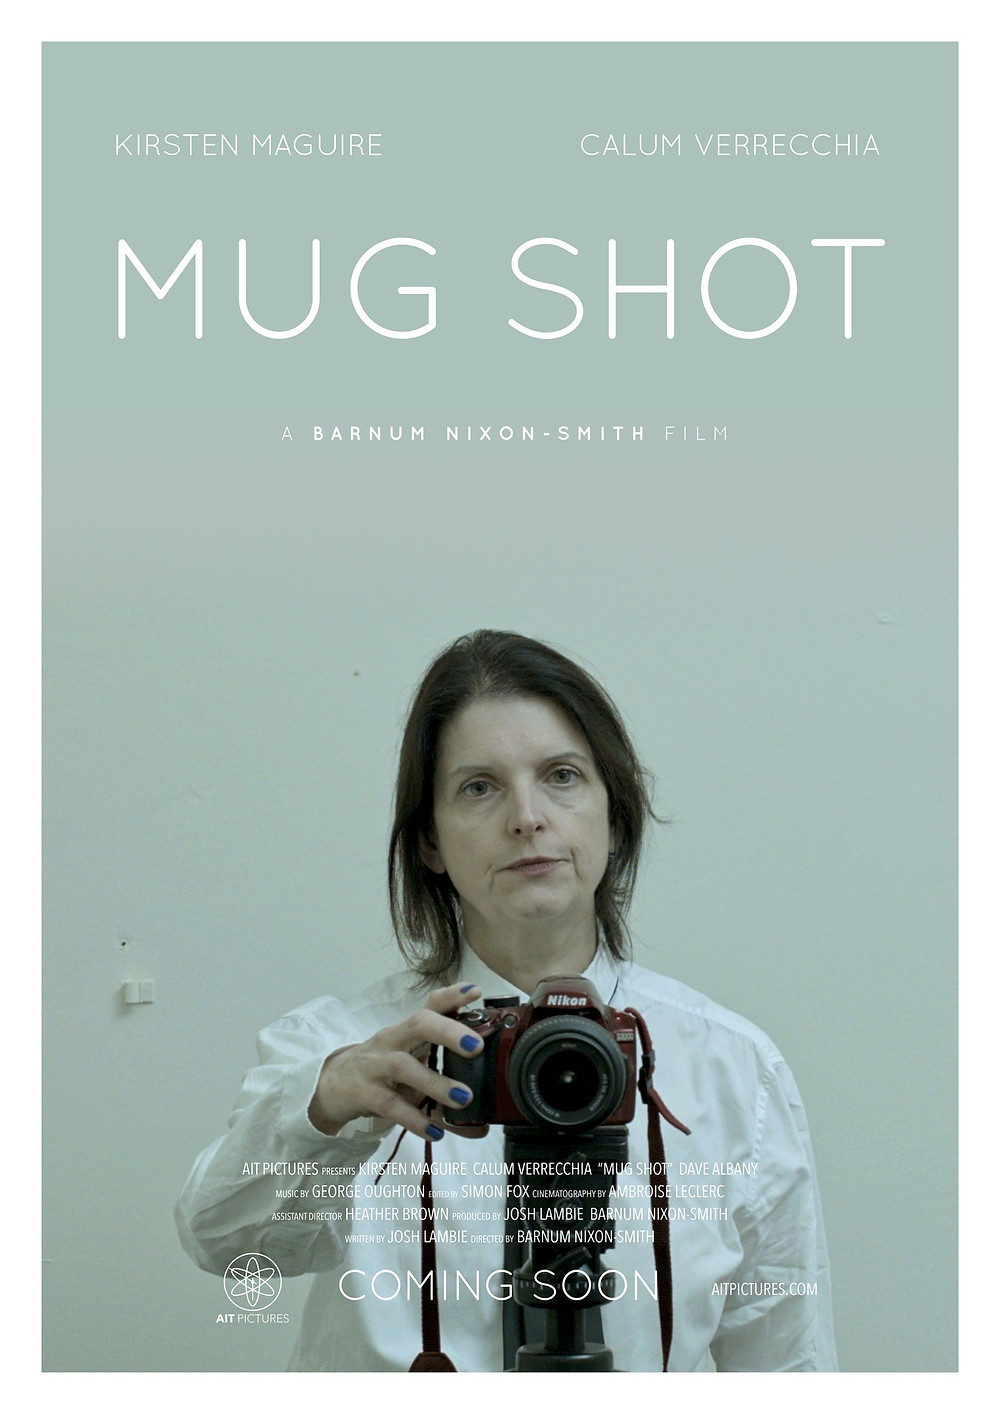 Mug Shot poster. Showing lead actress Kirsten Maguire with a camera.